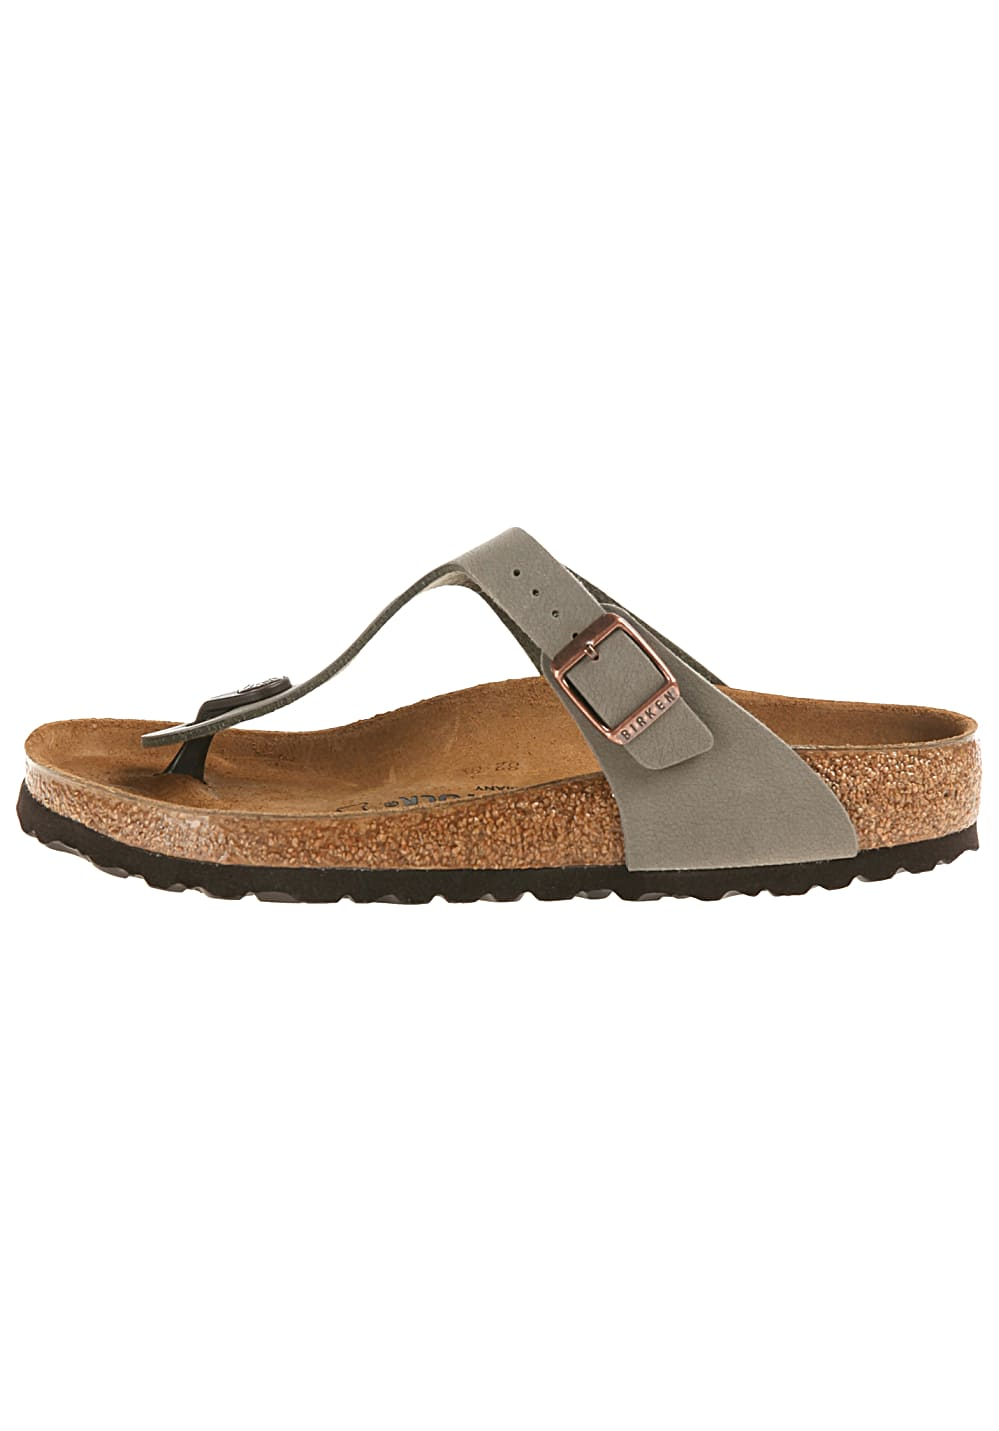 91055f13fb5 ... Birkenstock Gizeh BF - Sandals for Women - Grey. Back to Overview. 1   2  3. Previous. Next